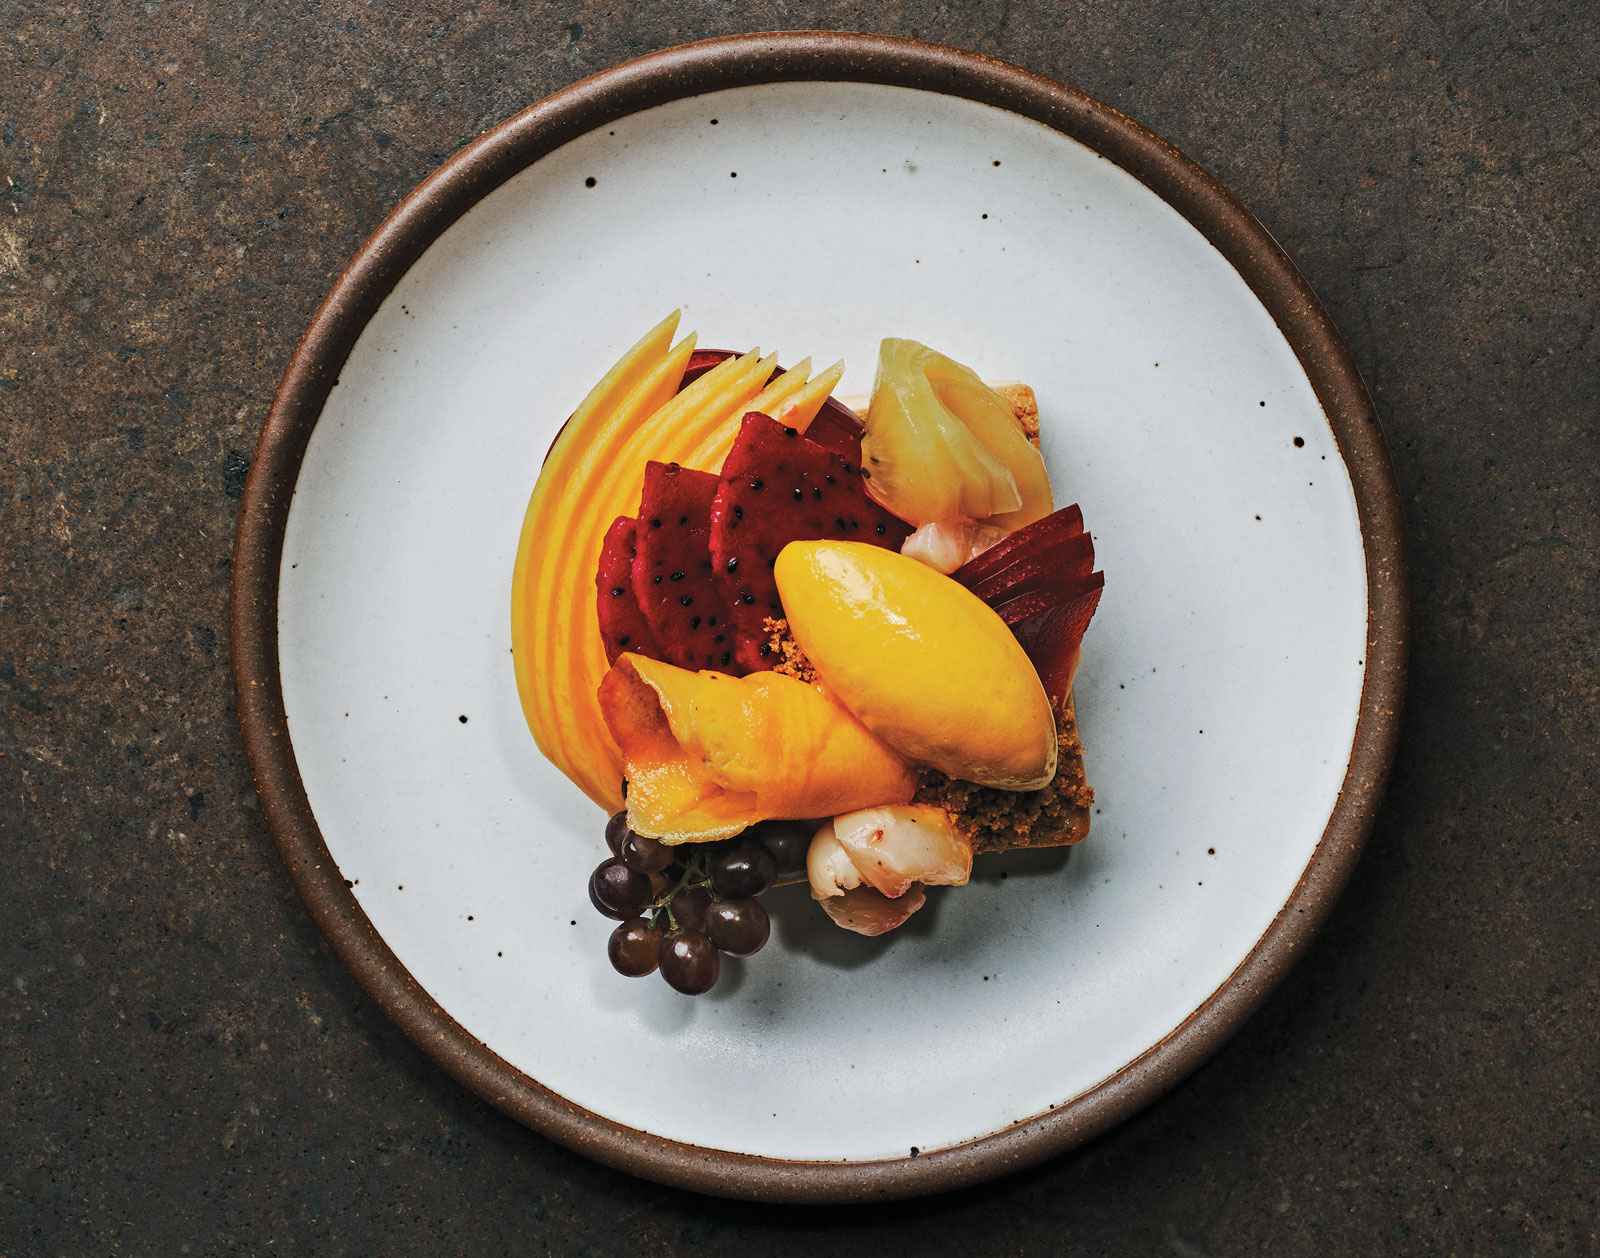 A colourful, fruity dessert on a white plate.